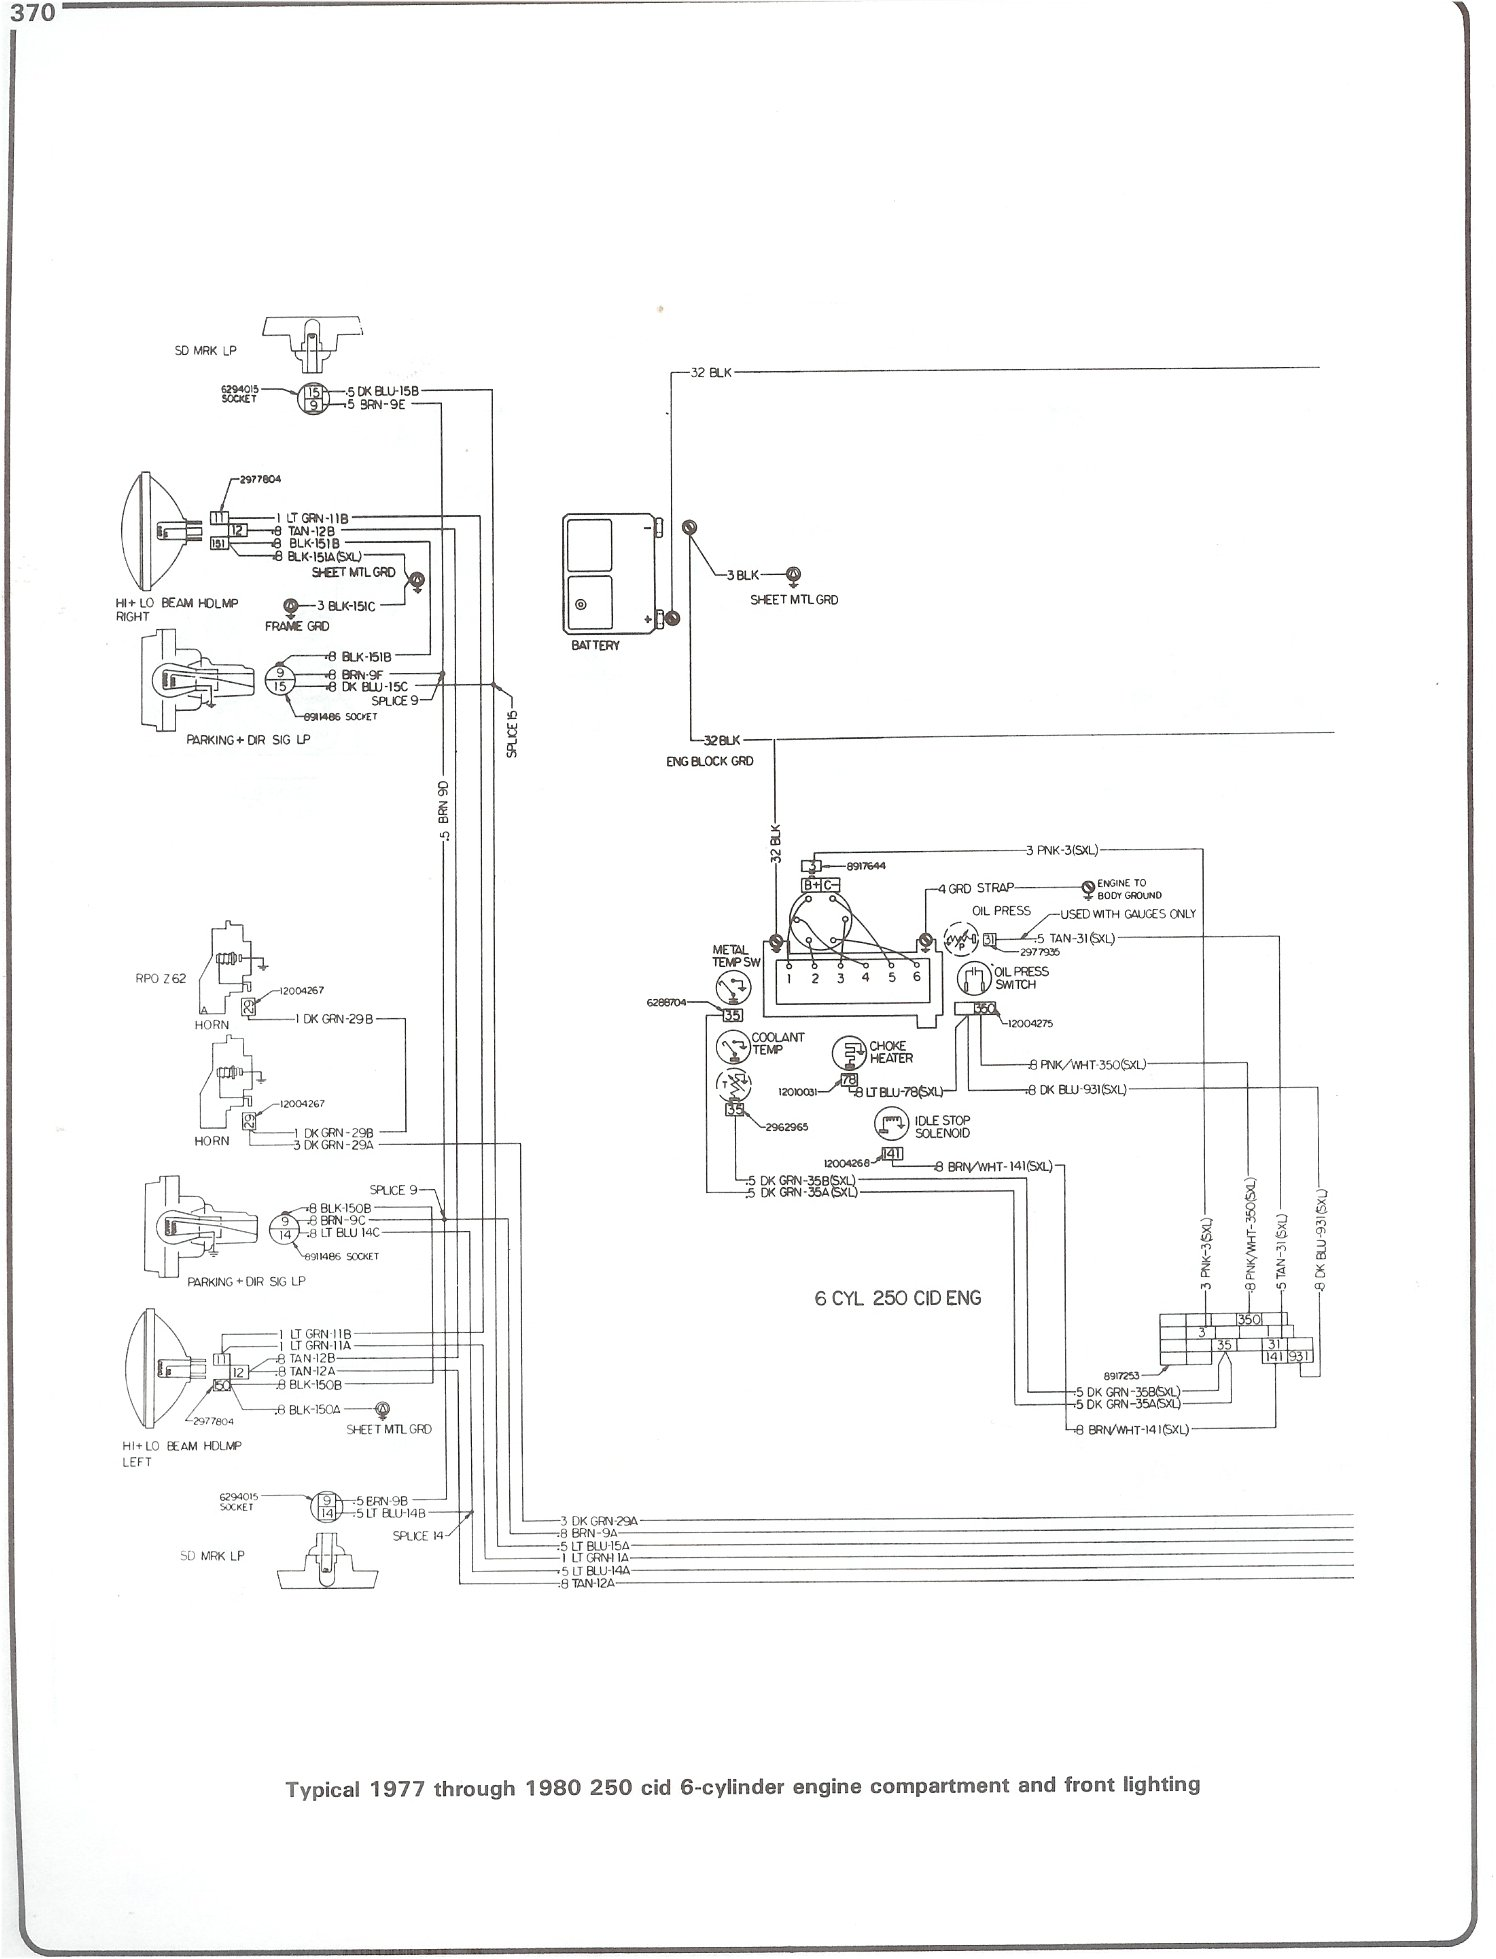 Complete 73 87 Wiring Diagrams Ford Rear Wiper Motor Diagram 77 80 250 I6 Engine And Front Lighting